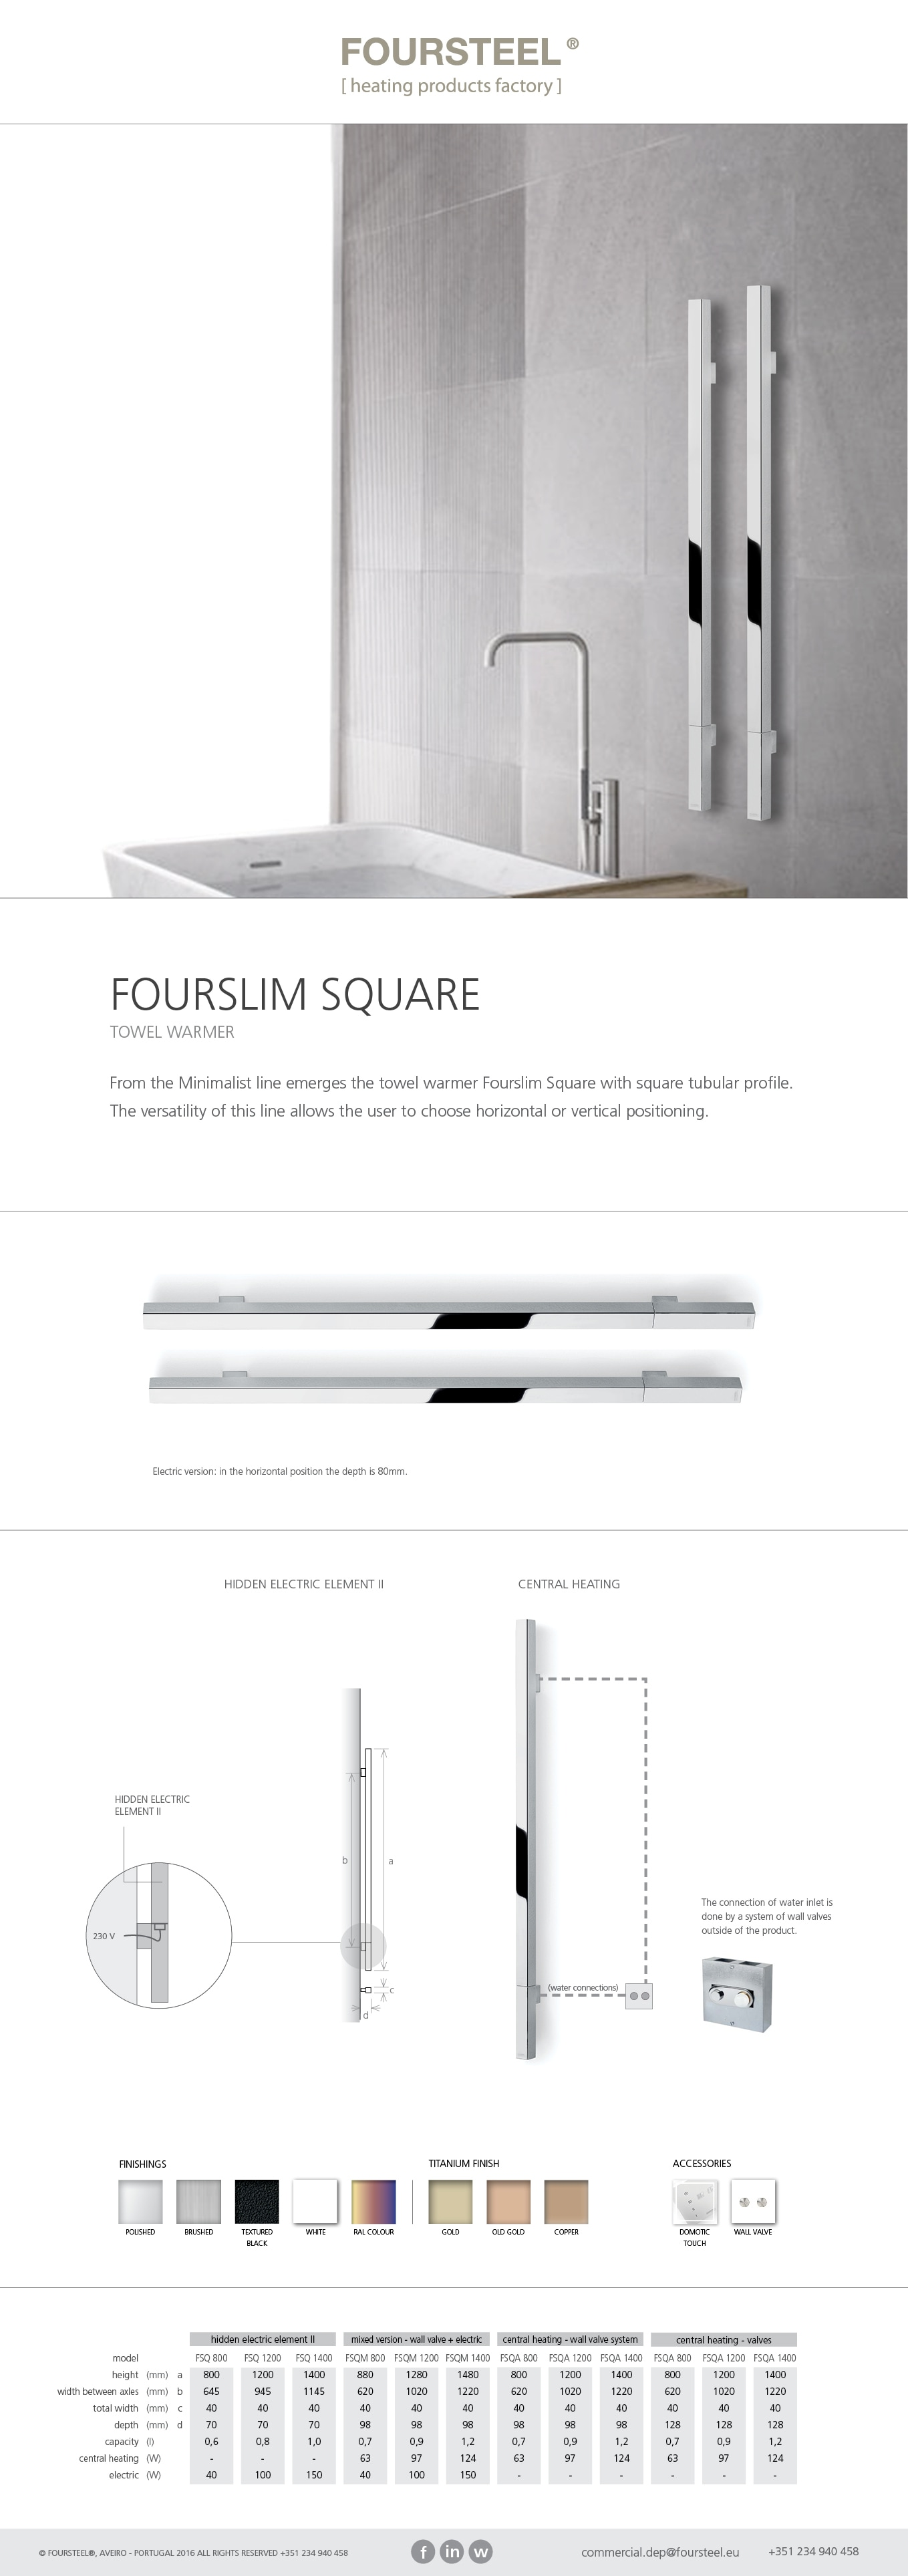 fourslim square - apr 2016